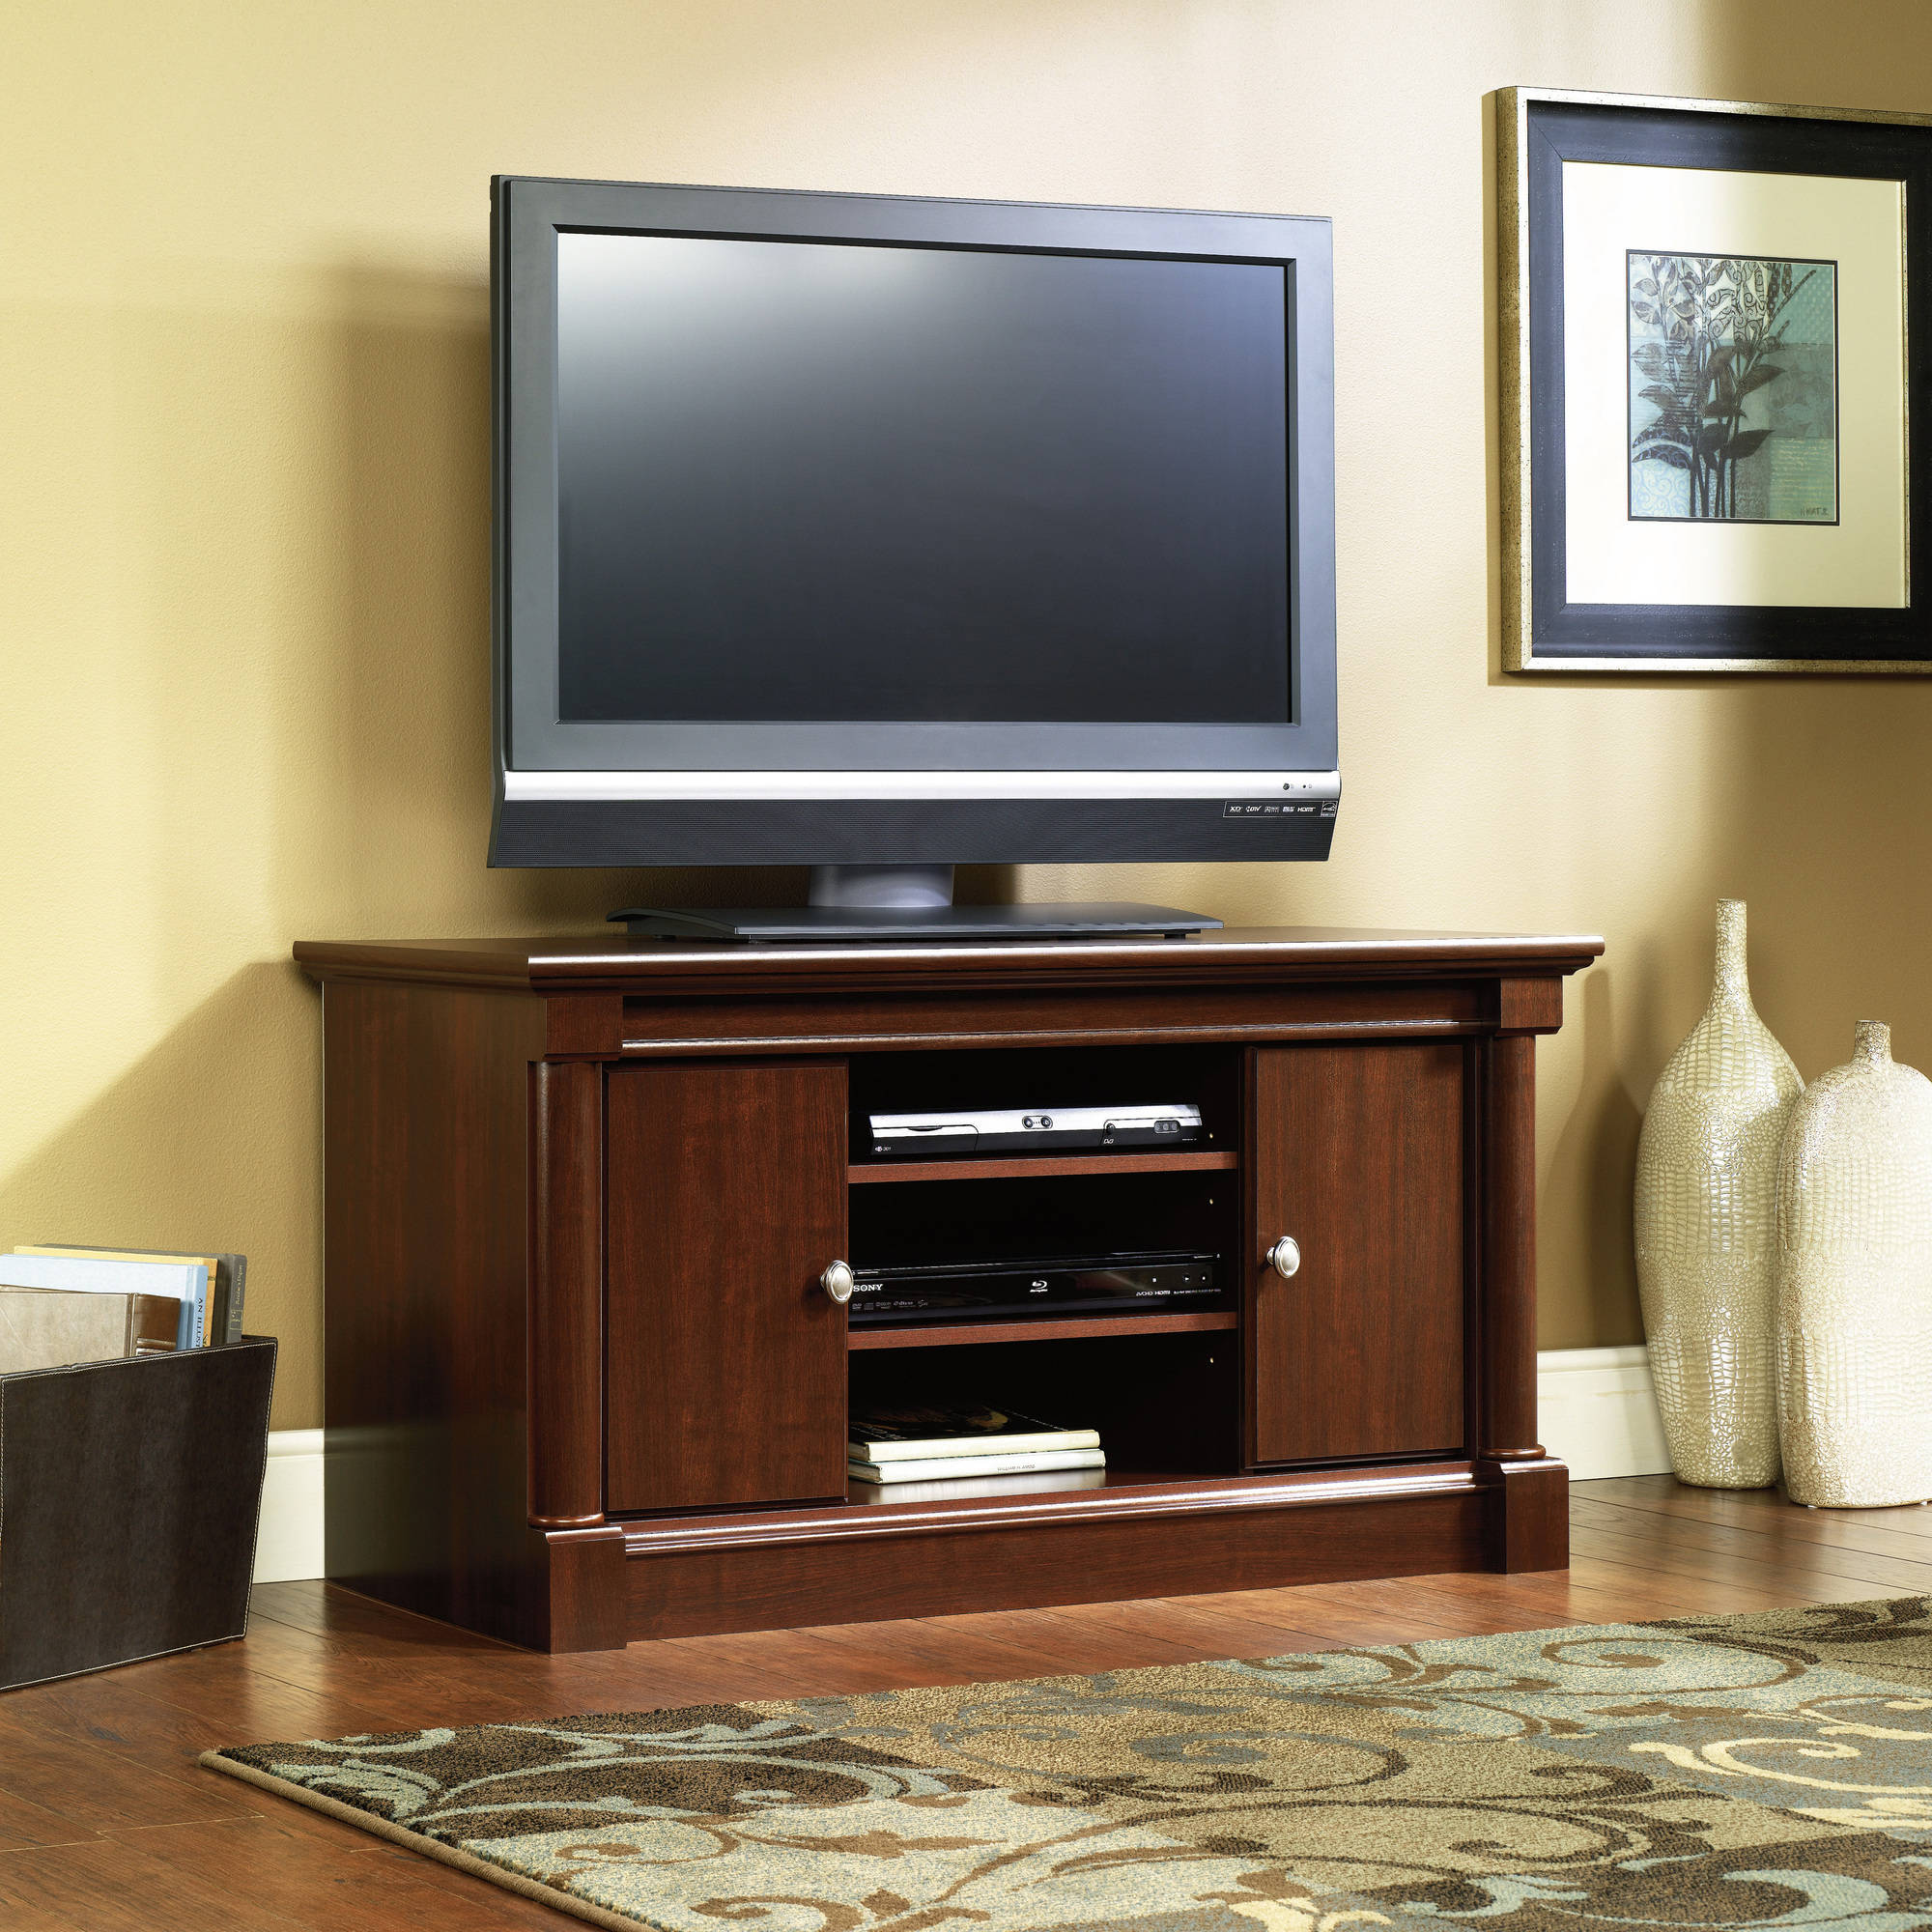 "Sauder Palladia TV Stand for TV's up to 50"", Cherry Finish"